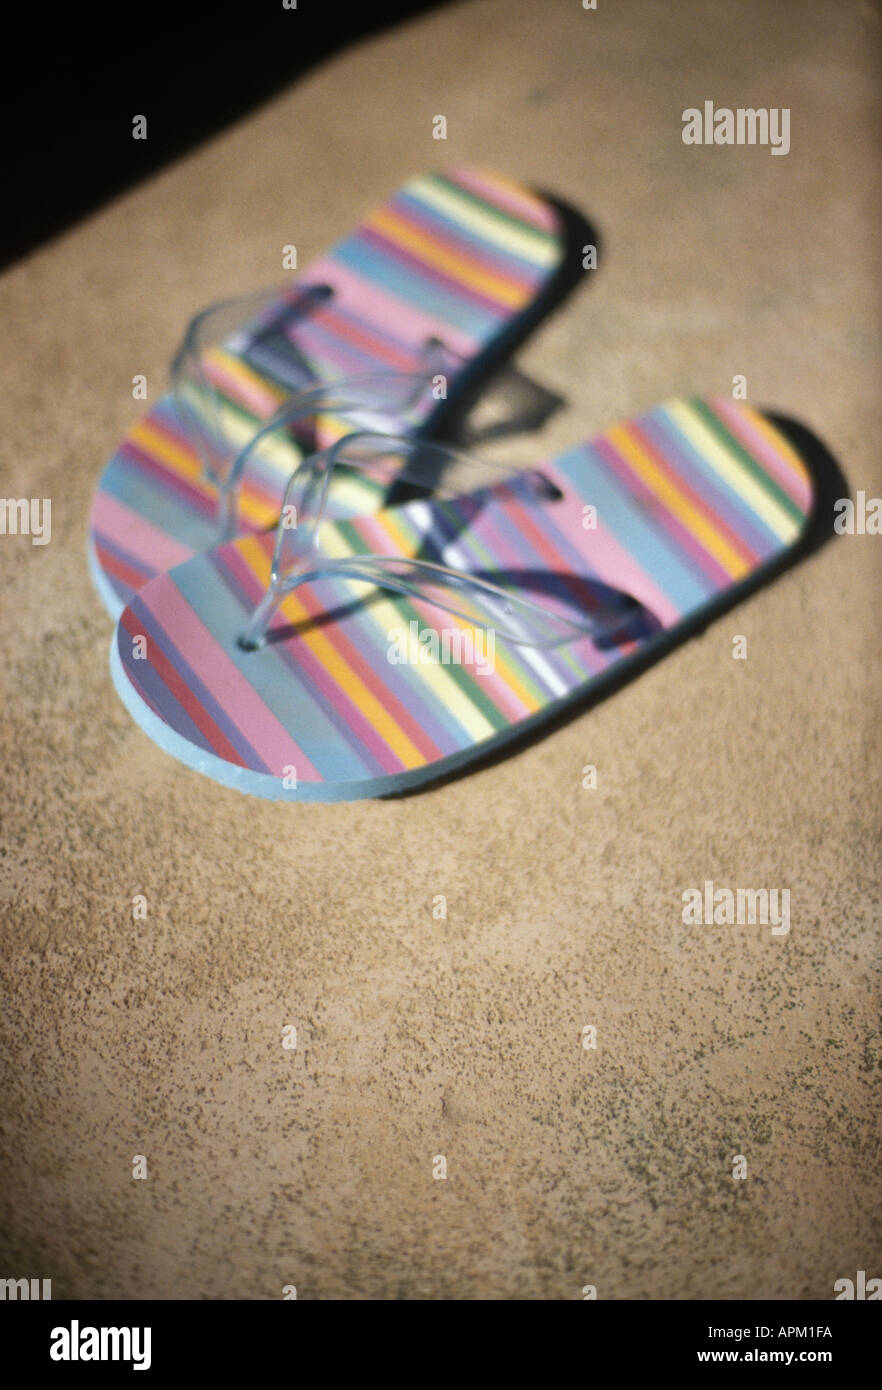 a pair of multi coloured pastel flip flops - Stock Image